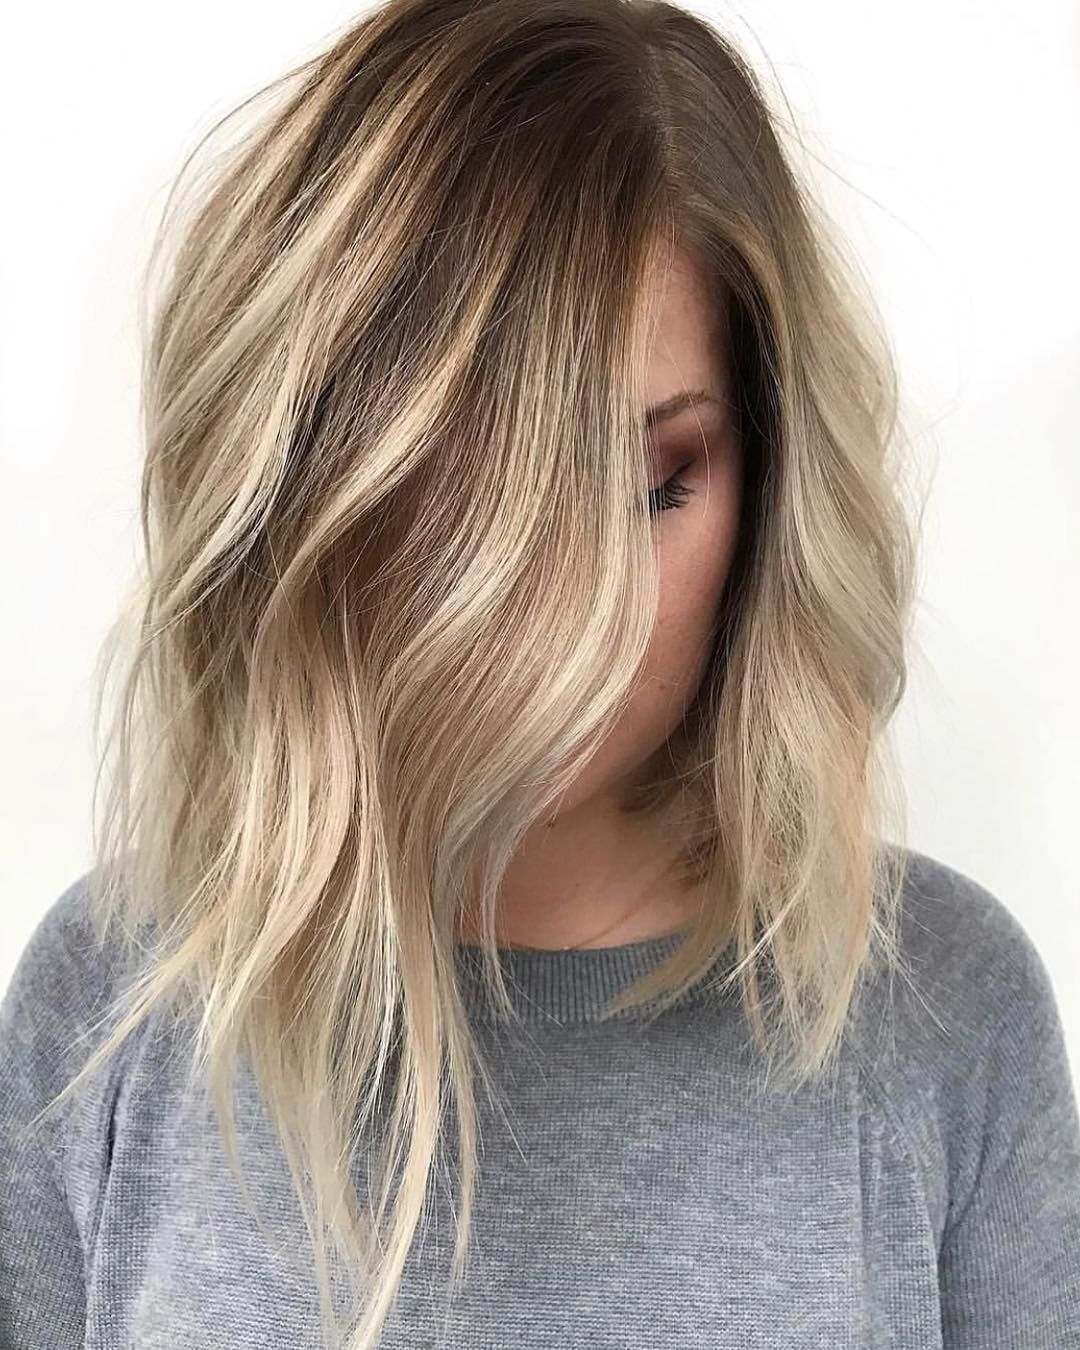 Pin by regan sauls on all about the hair pinterest hair makeup